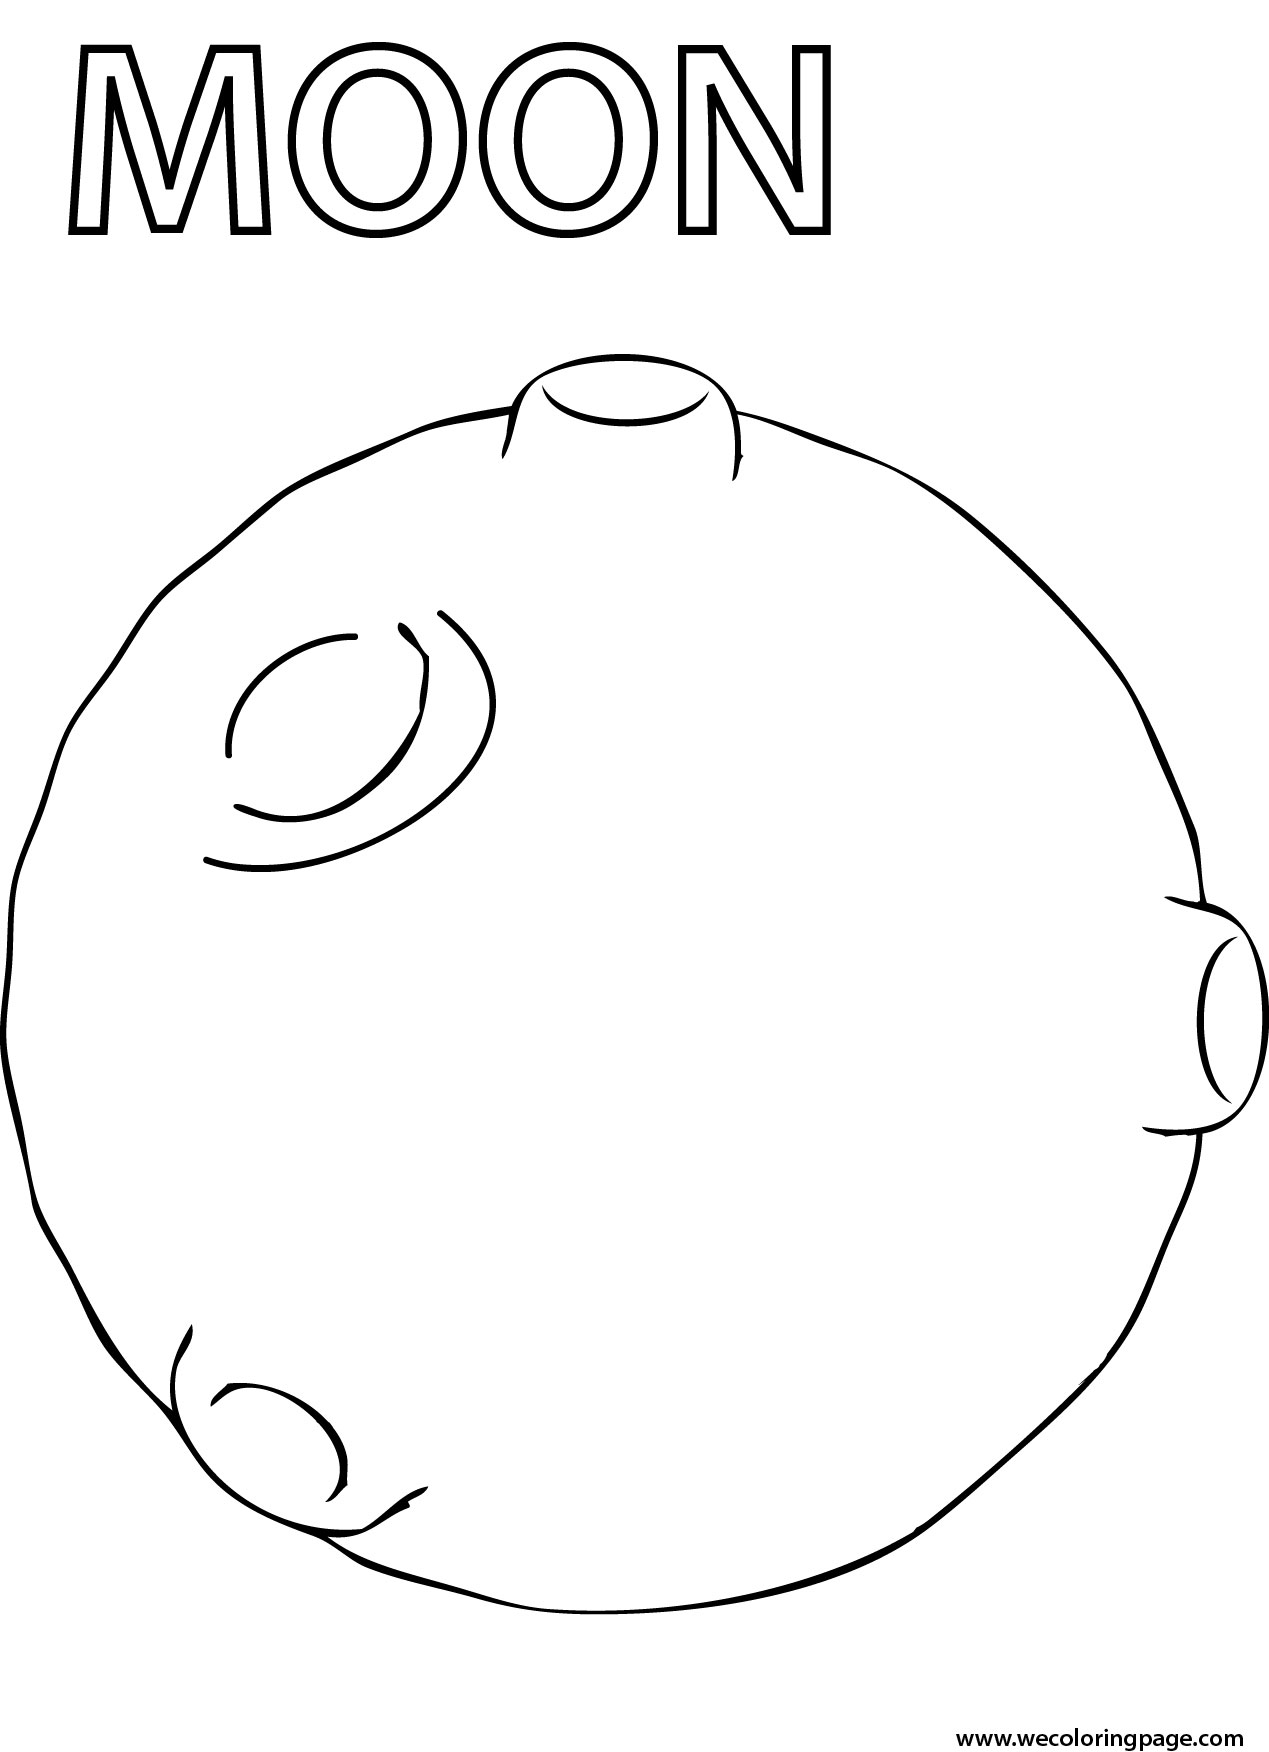 Moon coloring pages for preschoolers - Moon Coloring Page